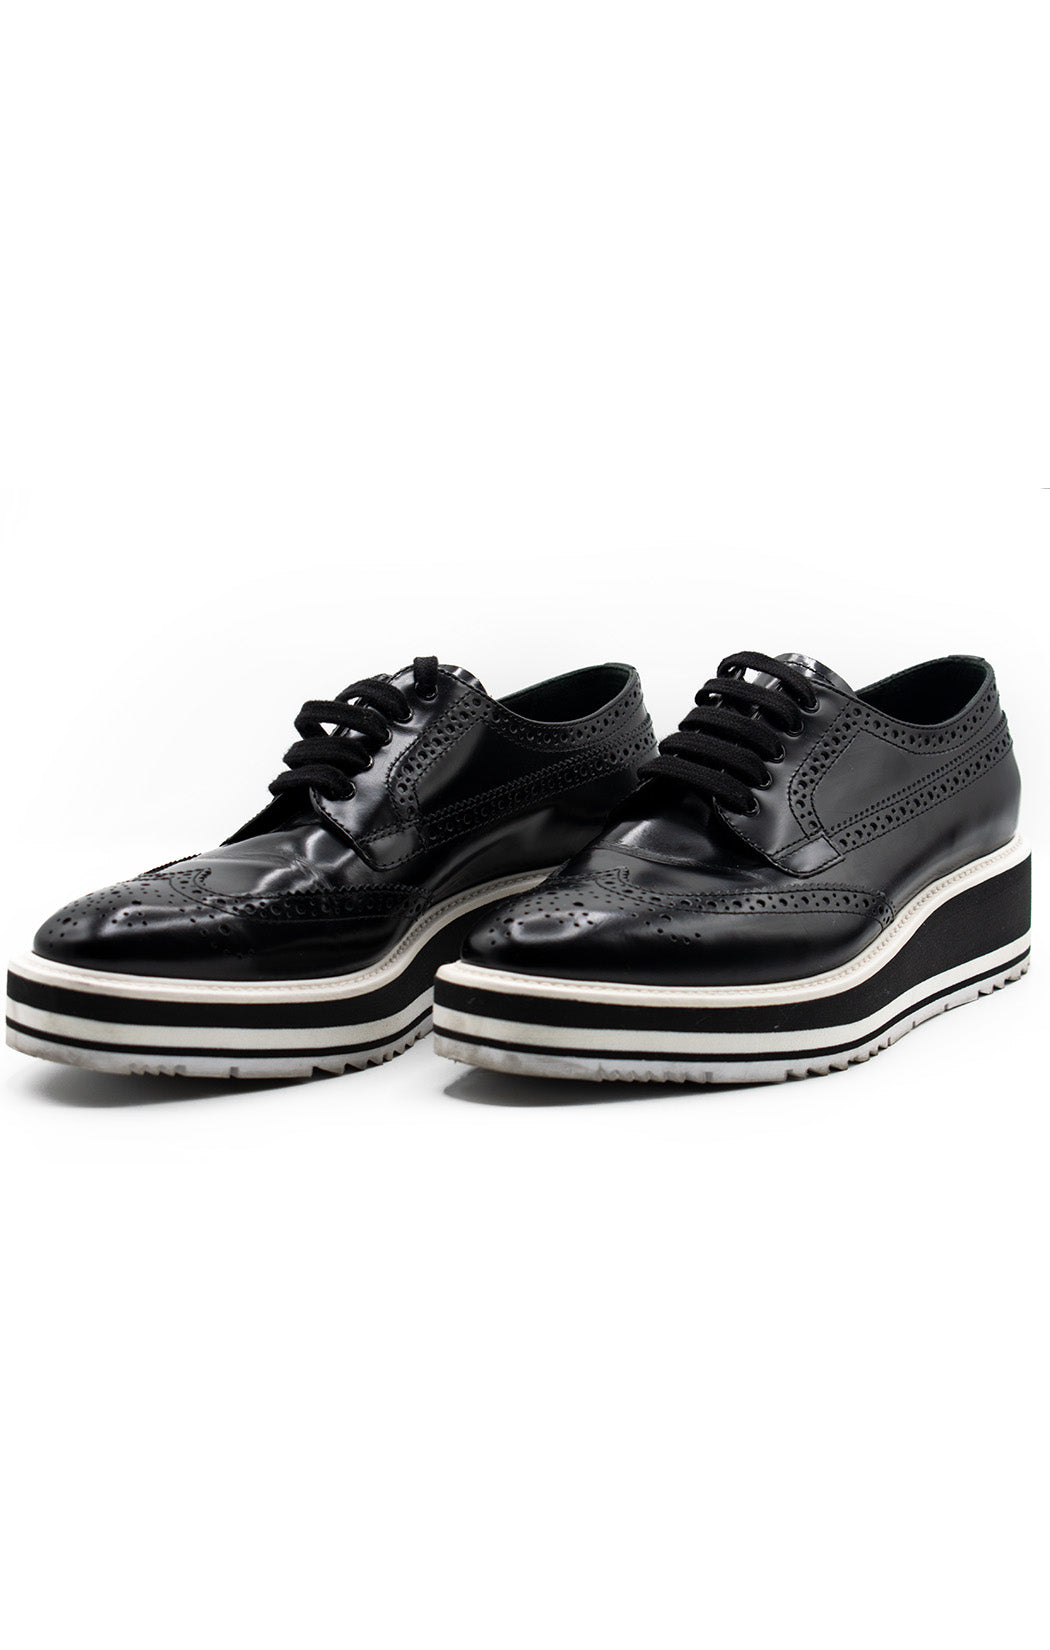 Front view of PRADA Oxford shoe Size: 8.5